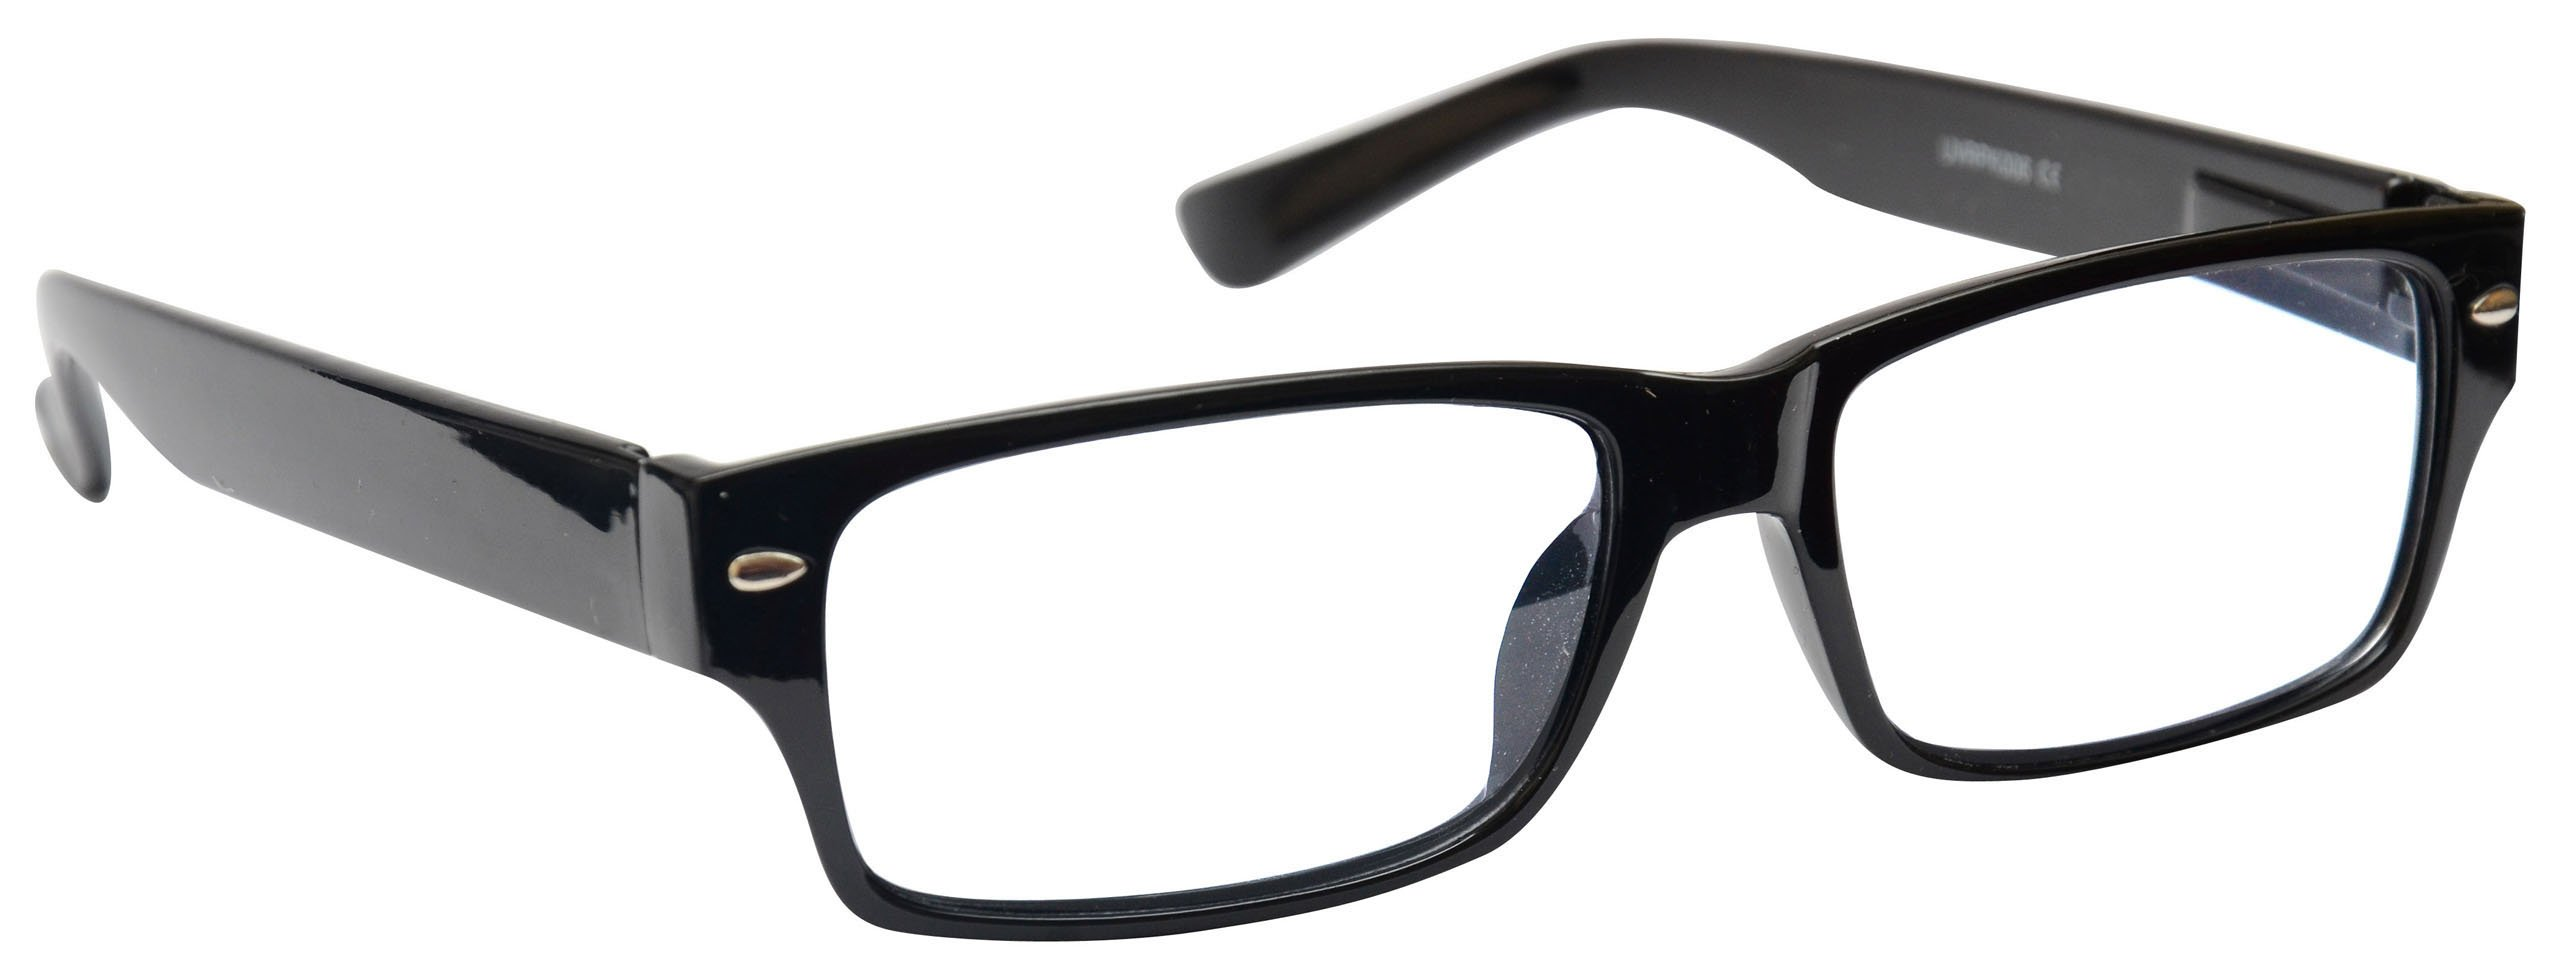 1e2877327b Black Near Short Sighted Distance Glasses for Myopia Mens Womens Spring  Hinges M6-1 -